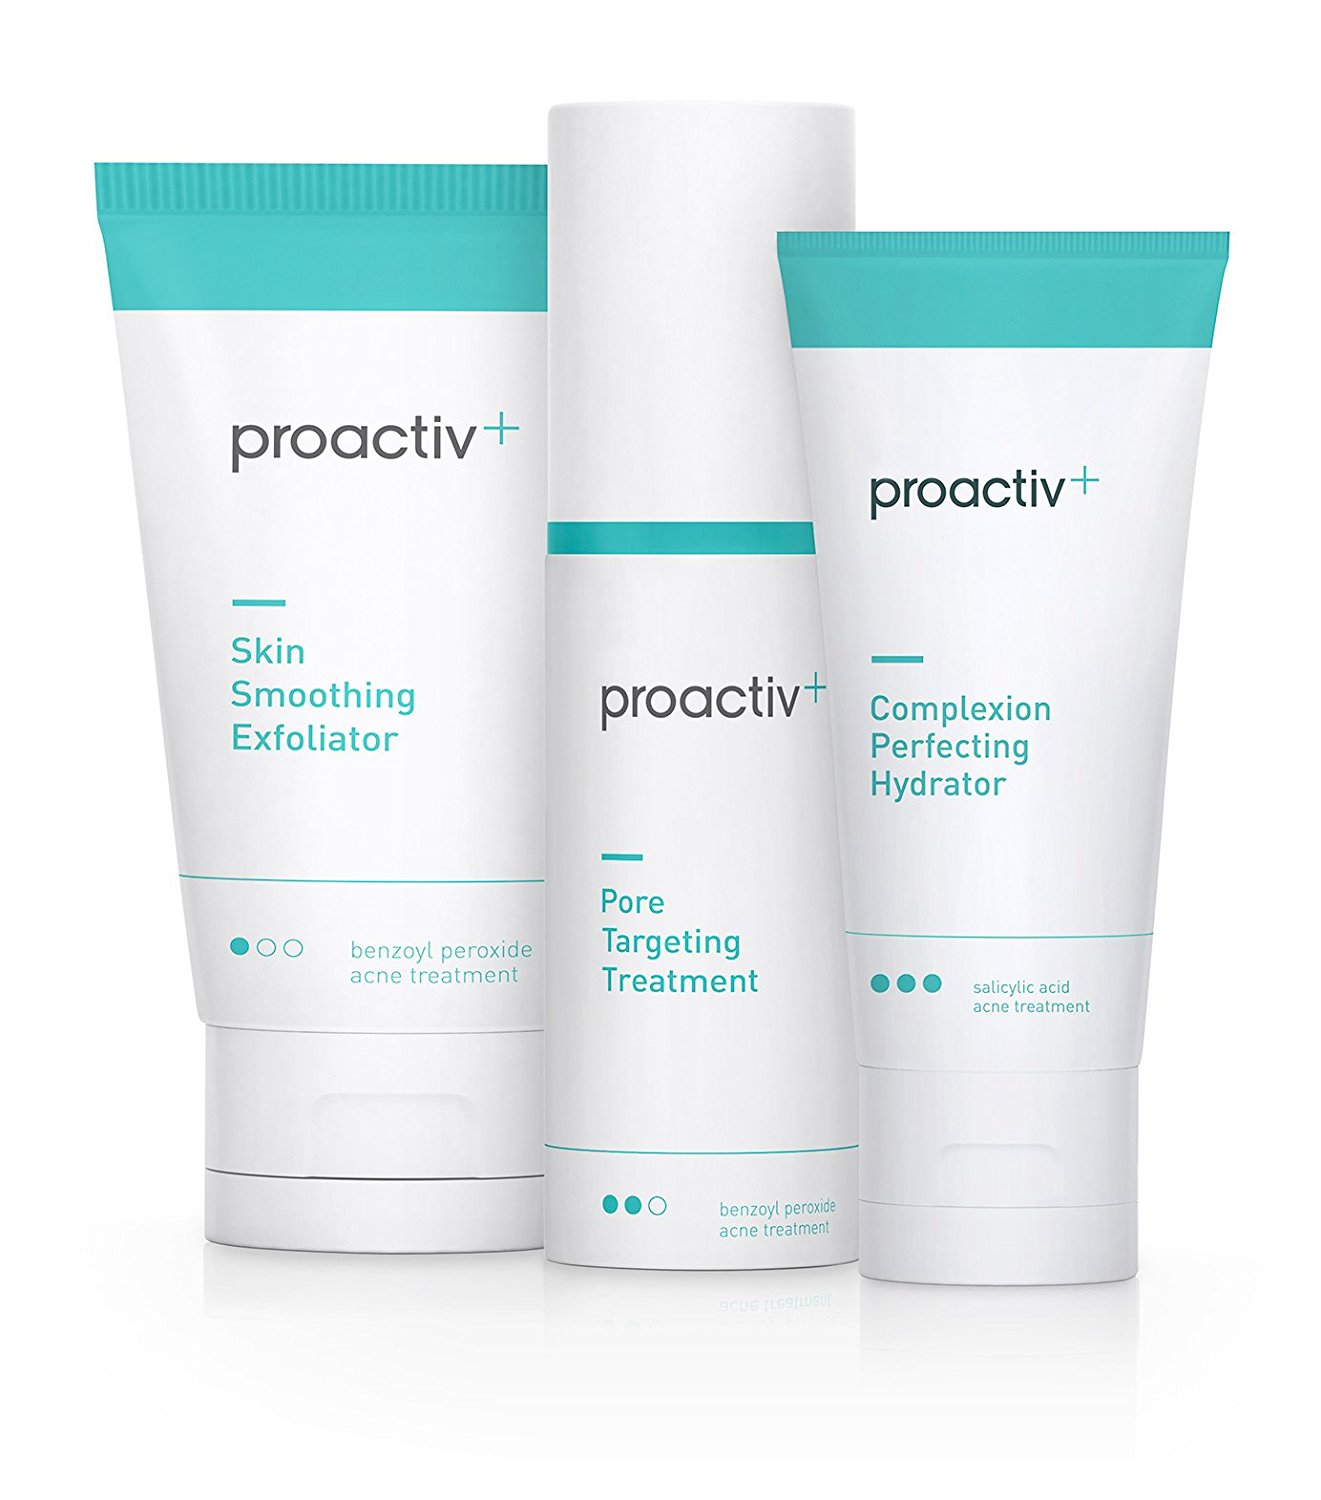 proactive skin care